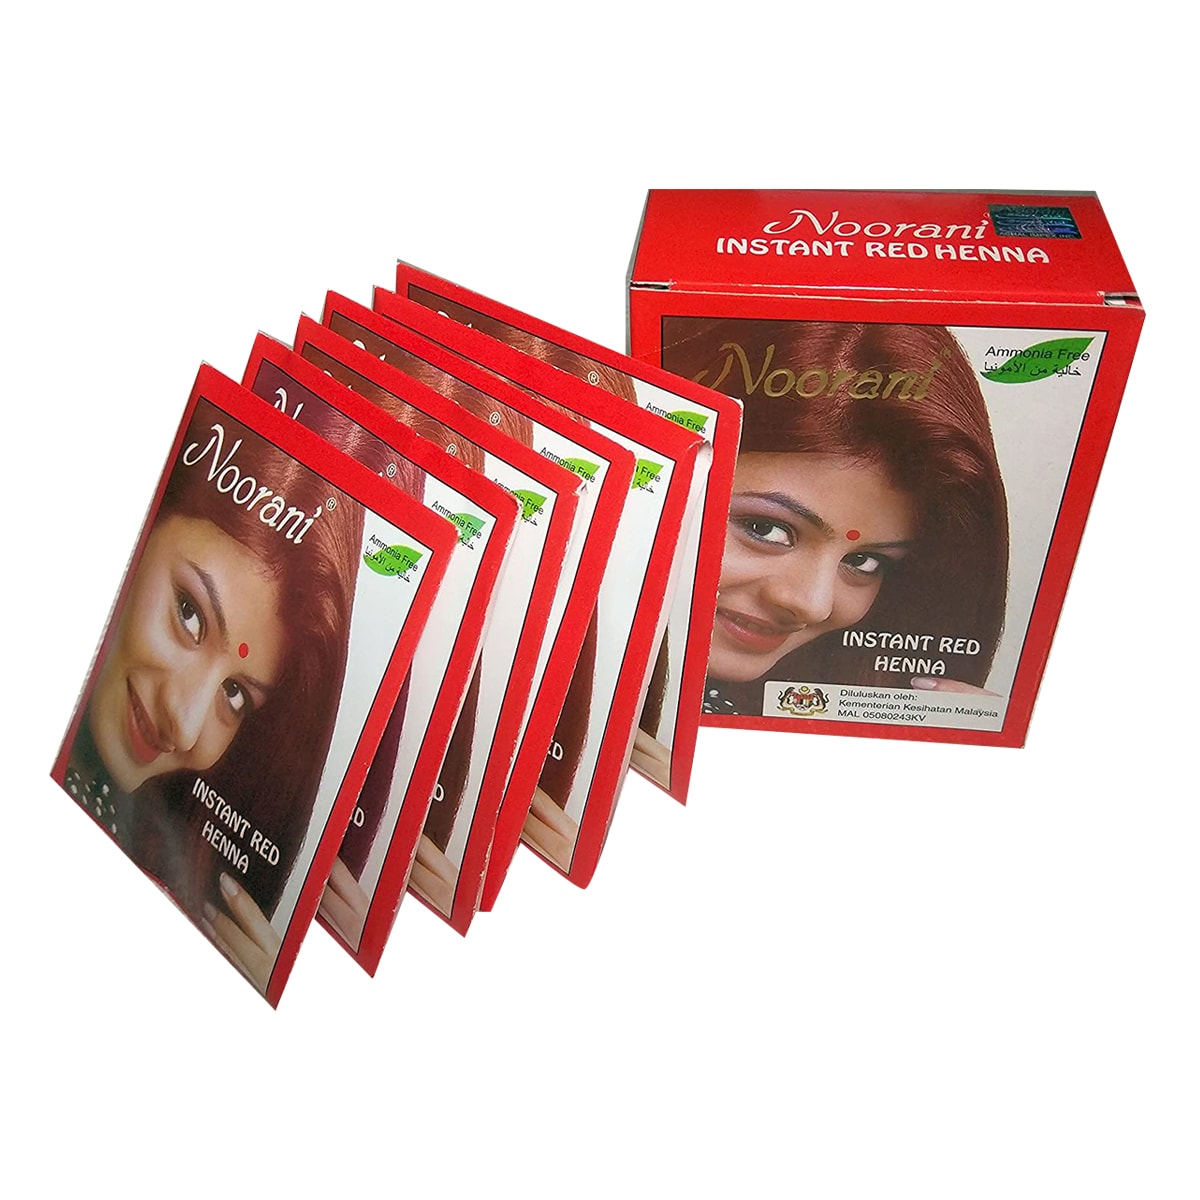 Buy Noorani Instant Red Henna (6 Packets 10 gm Each) - 6 Packet